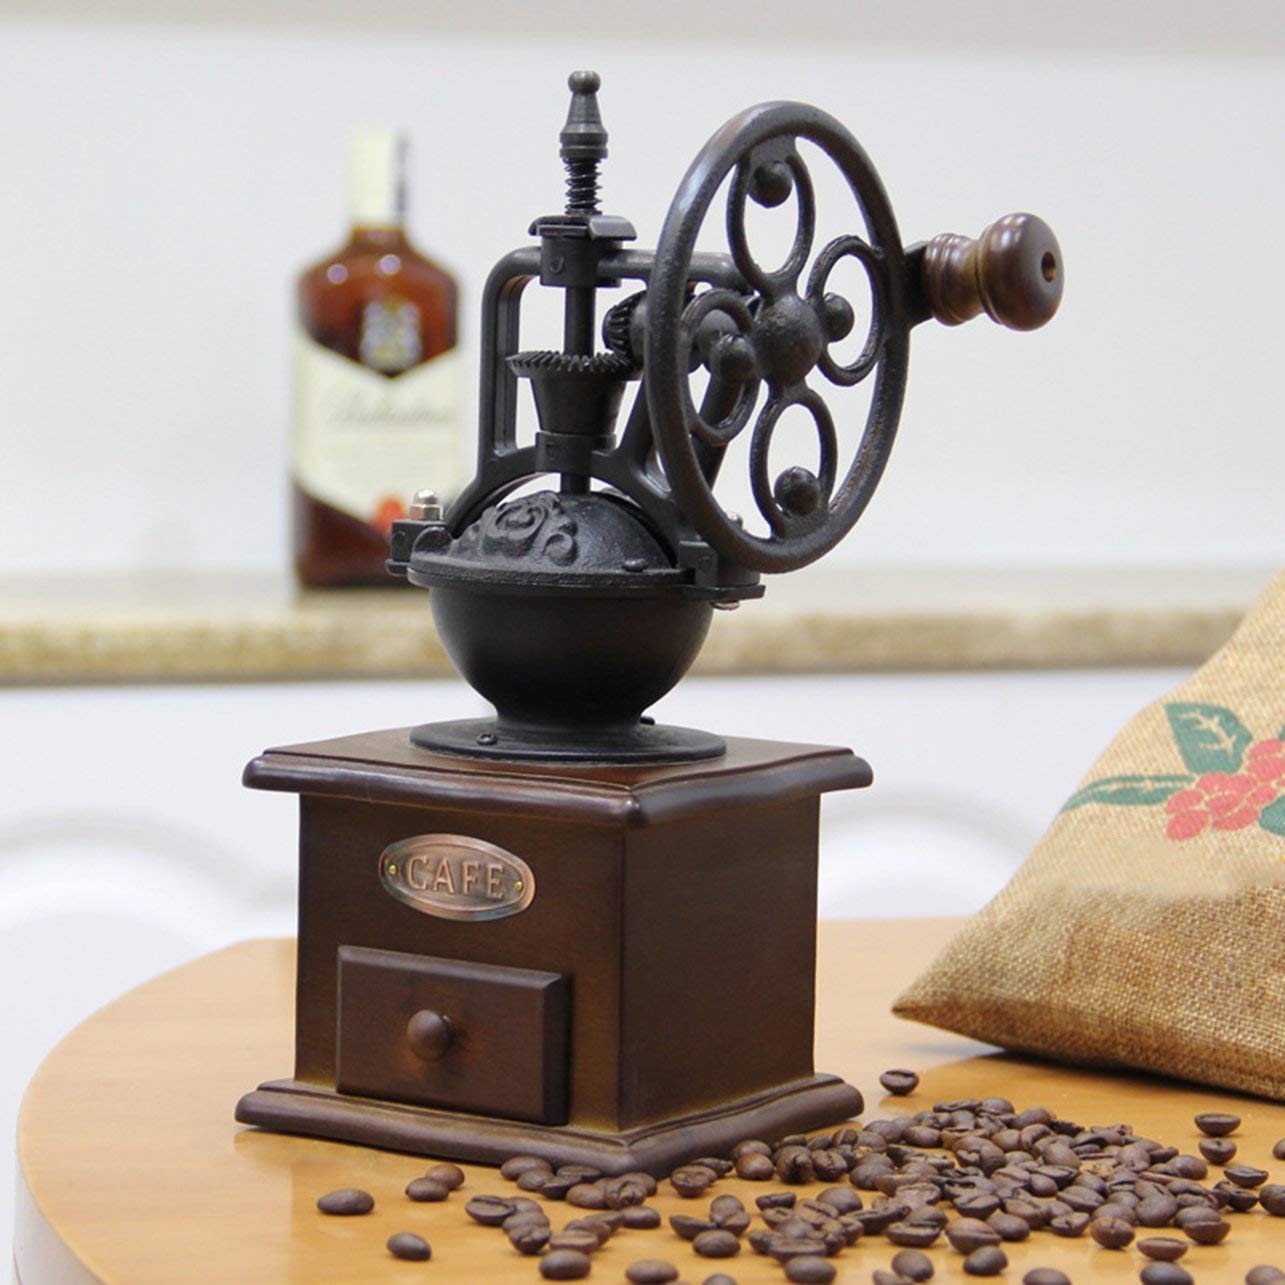 Manual Coffee Grinder Vintage Style Wooden Coffee Bean Mill Grinding Ferris Wheel Design Hand Coffee Maker Machine(Color:black and brown)